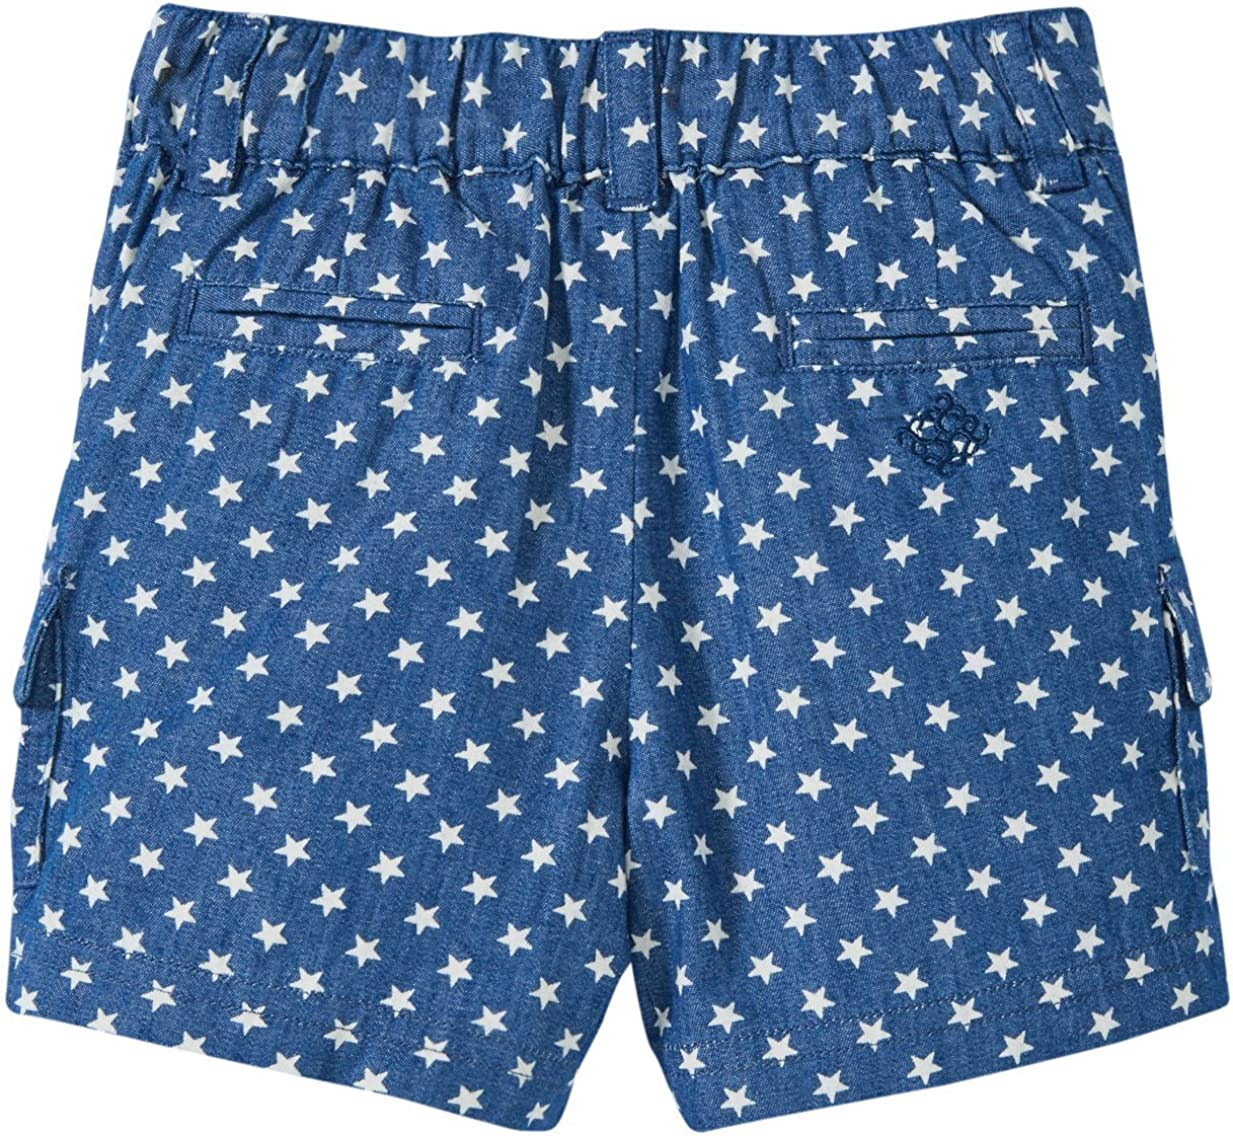 Andy /& Evan Baby Star Shorts